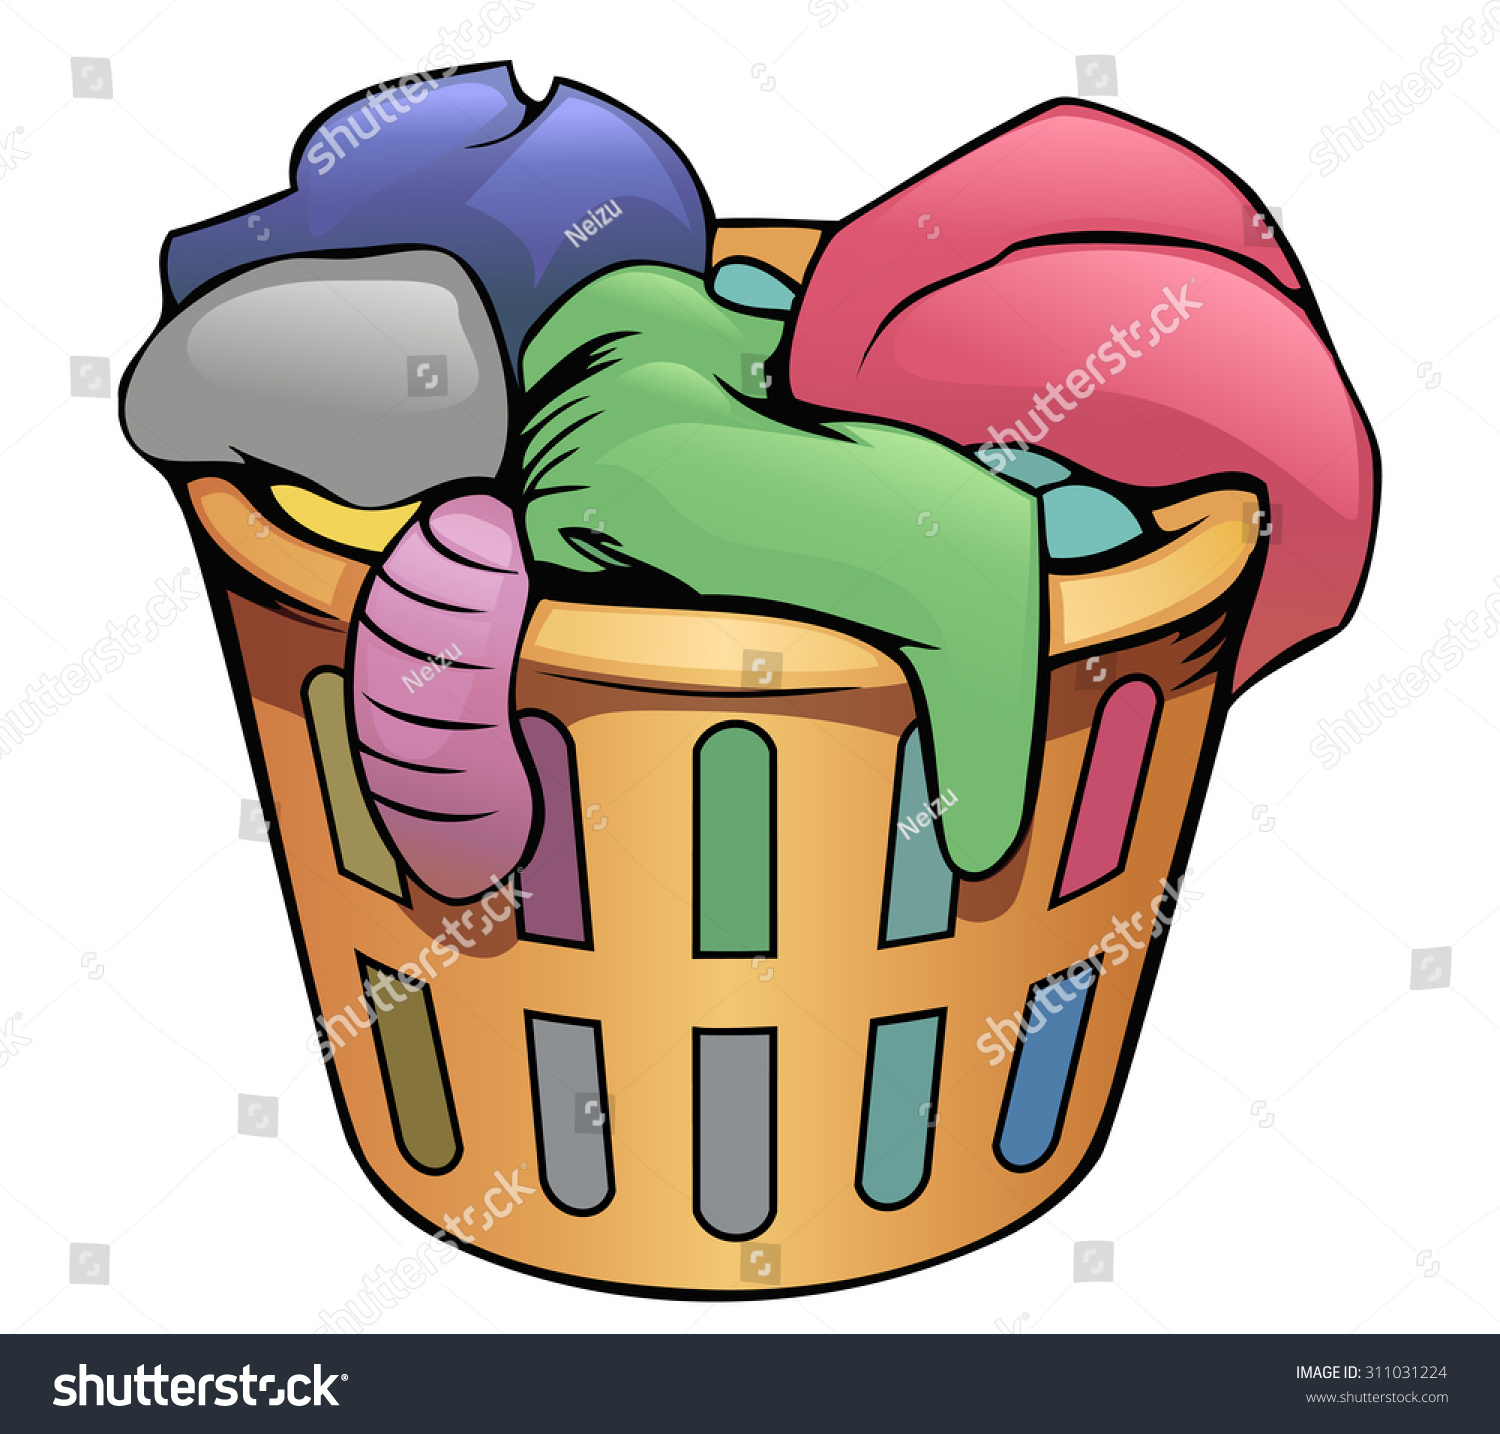 Bag in dirty clip. Laundry clipart soiled clothes